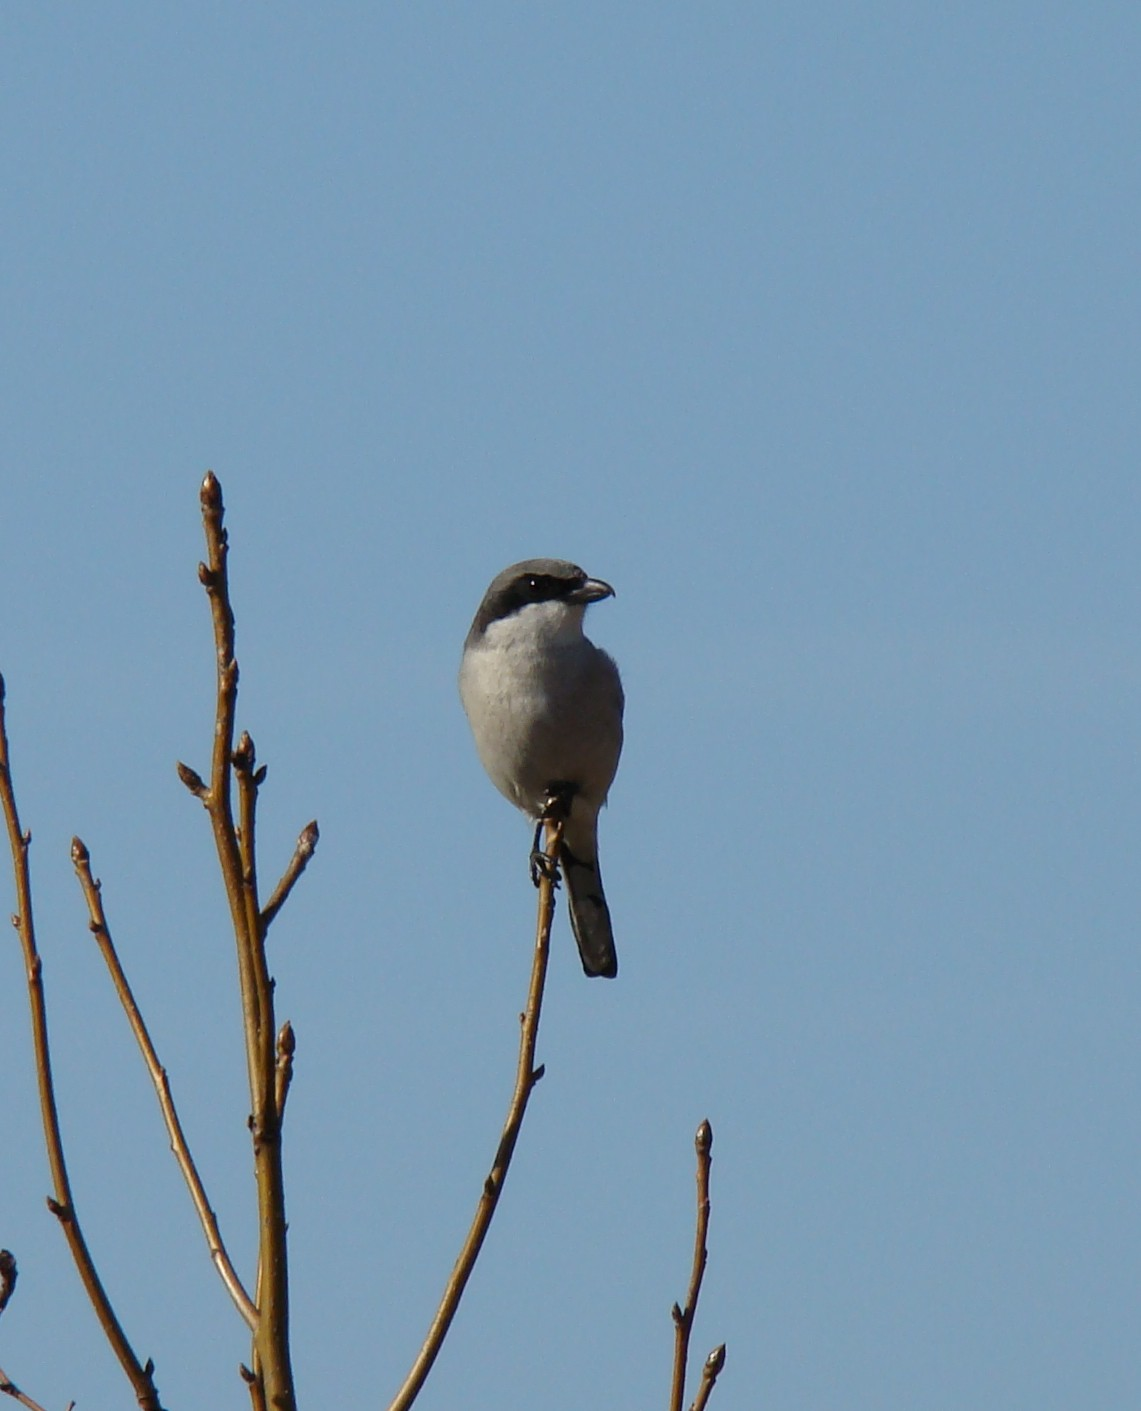 A Loggerhead Shrike surveys the thicket at Myrtlewood.